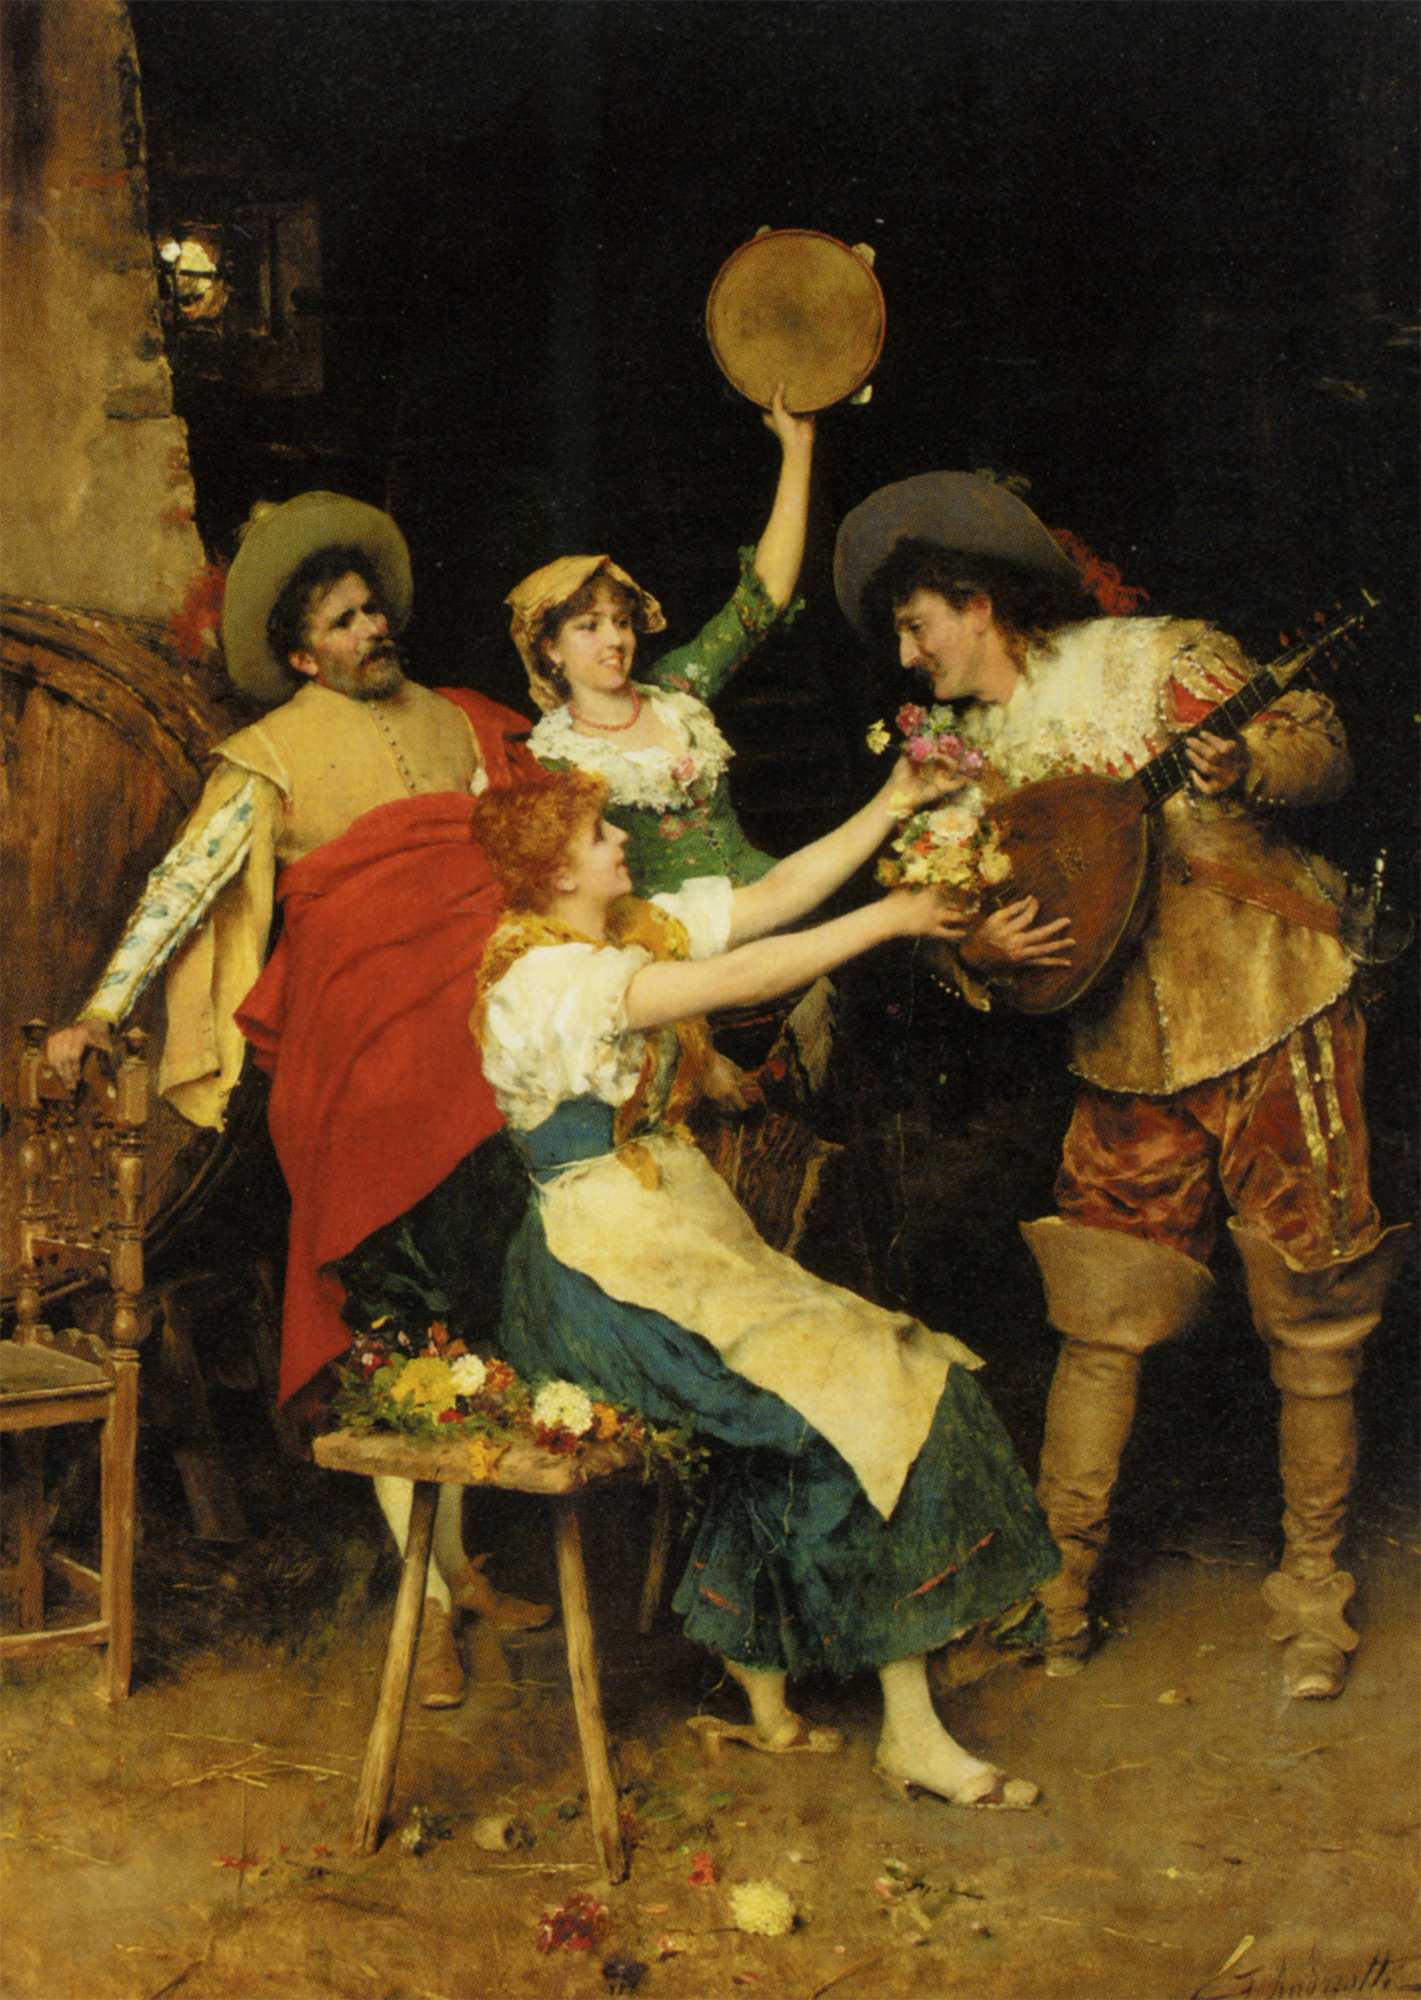 Flowers for Music :: Federico Andreotti - Romantic scenes in art and painting ôîòî